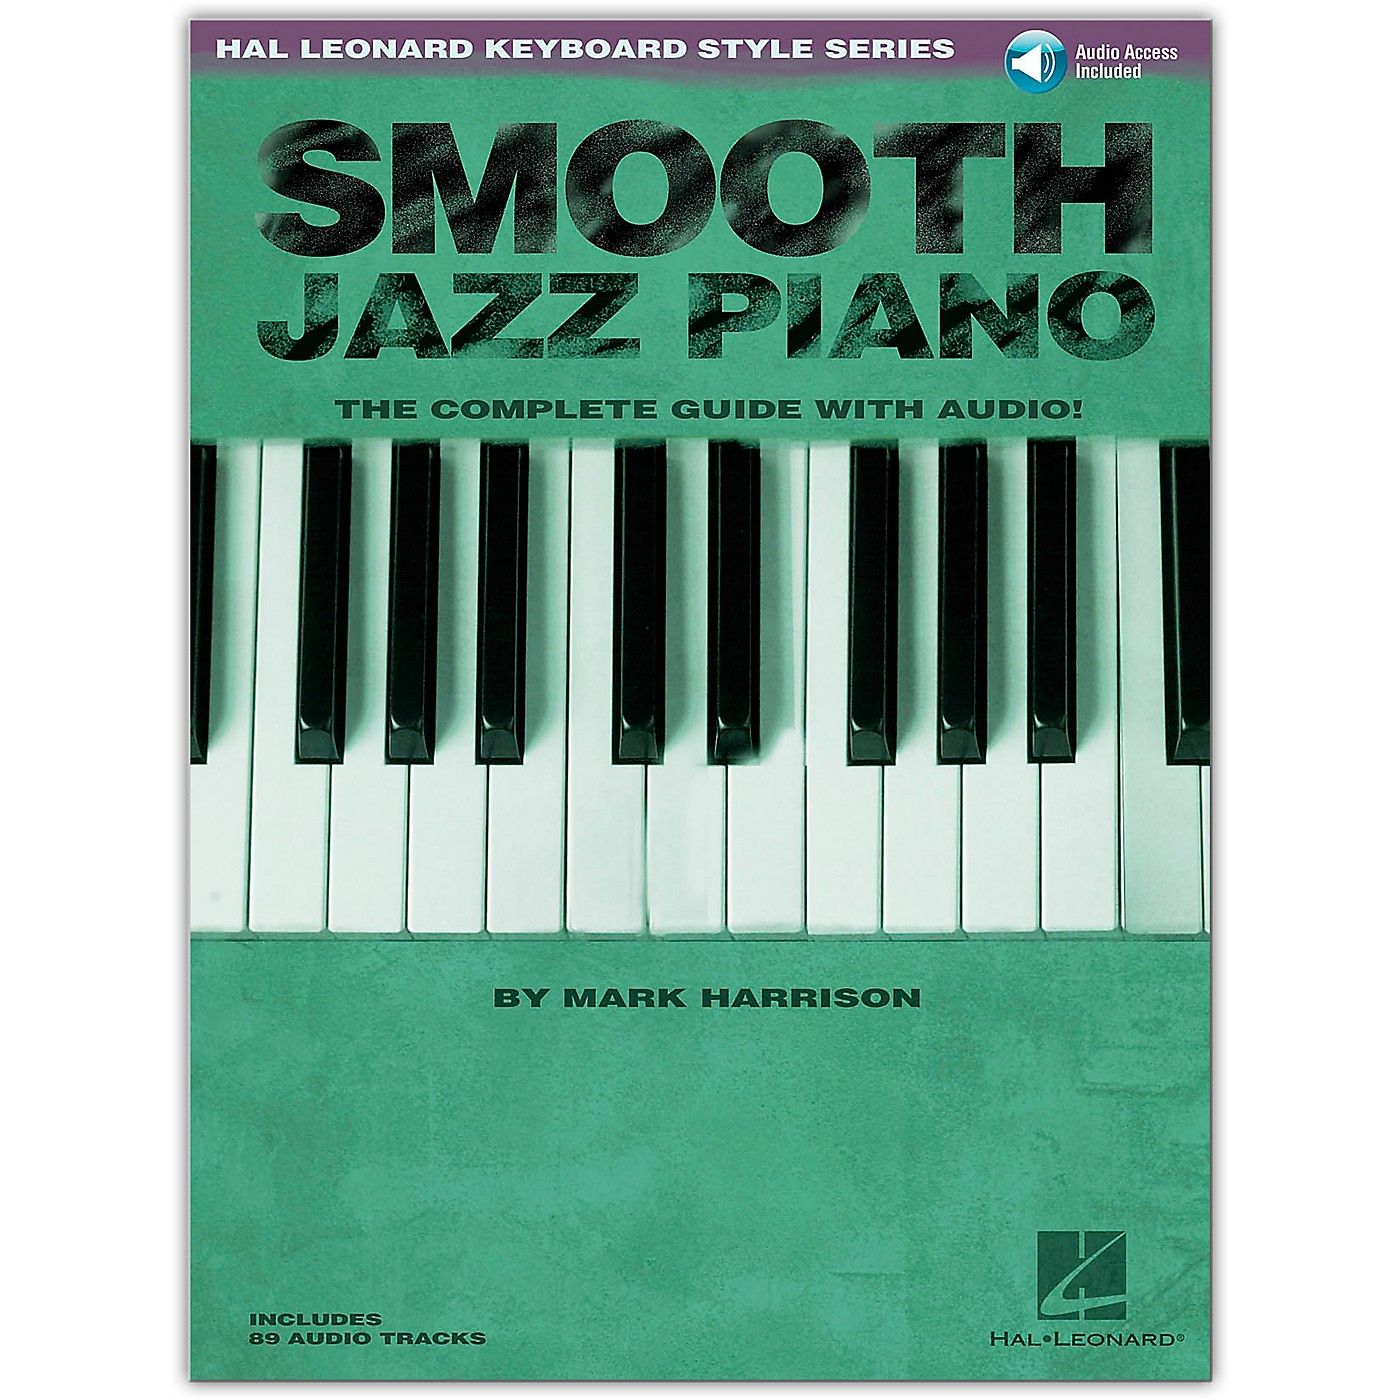 Hal Leonard Smooth Jazz Piano - Hl Keyboard Style Series (Book/Online Audio) thumbnail